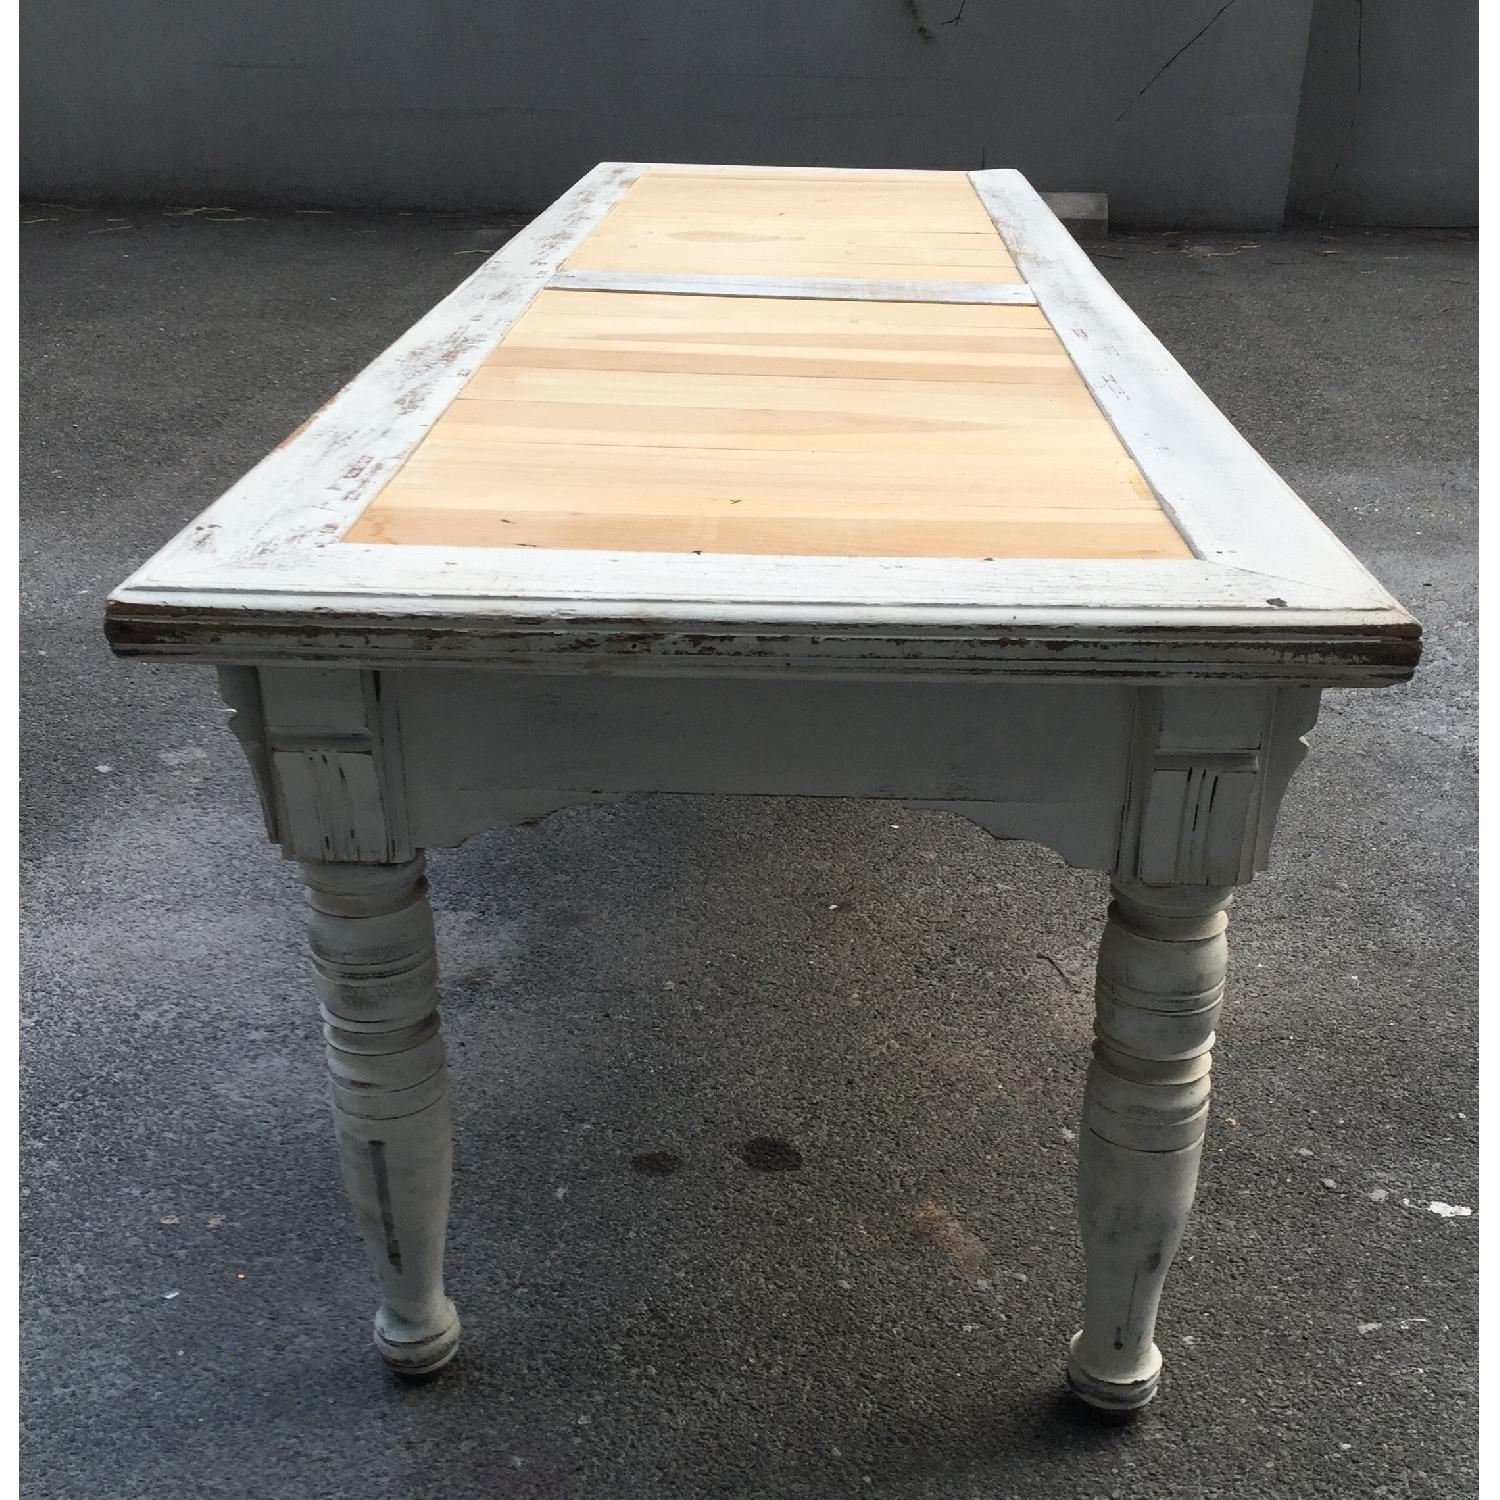 Refurbished Vintage Table - image-6